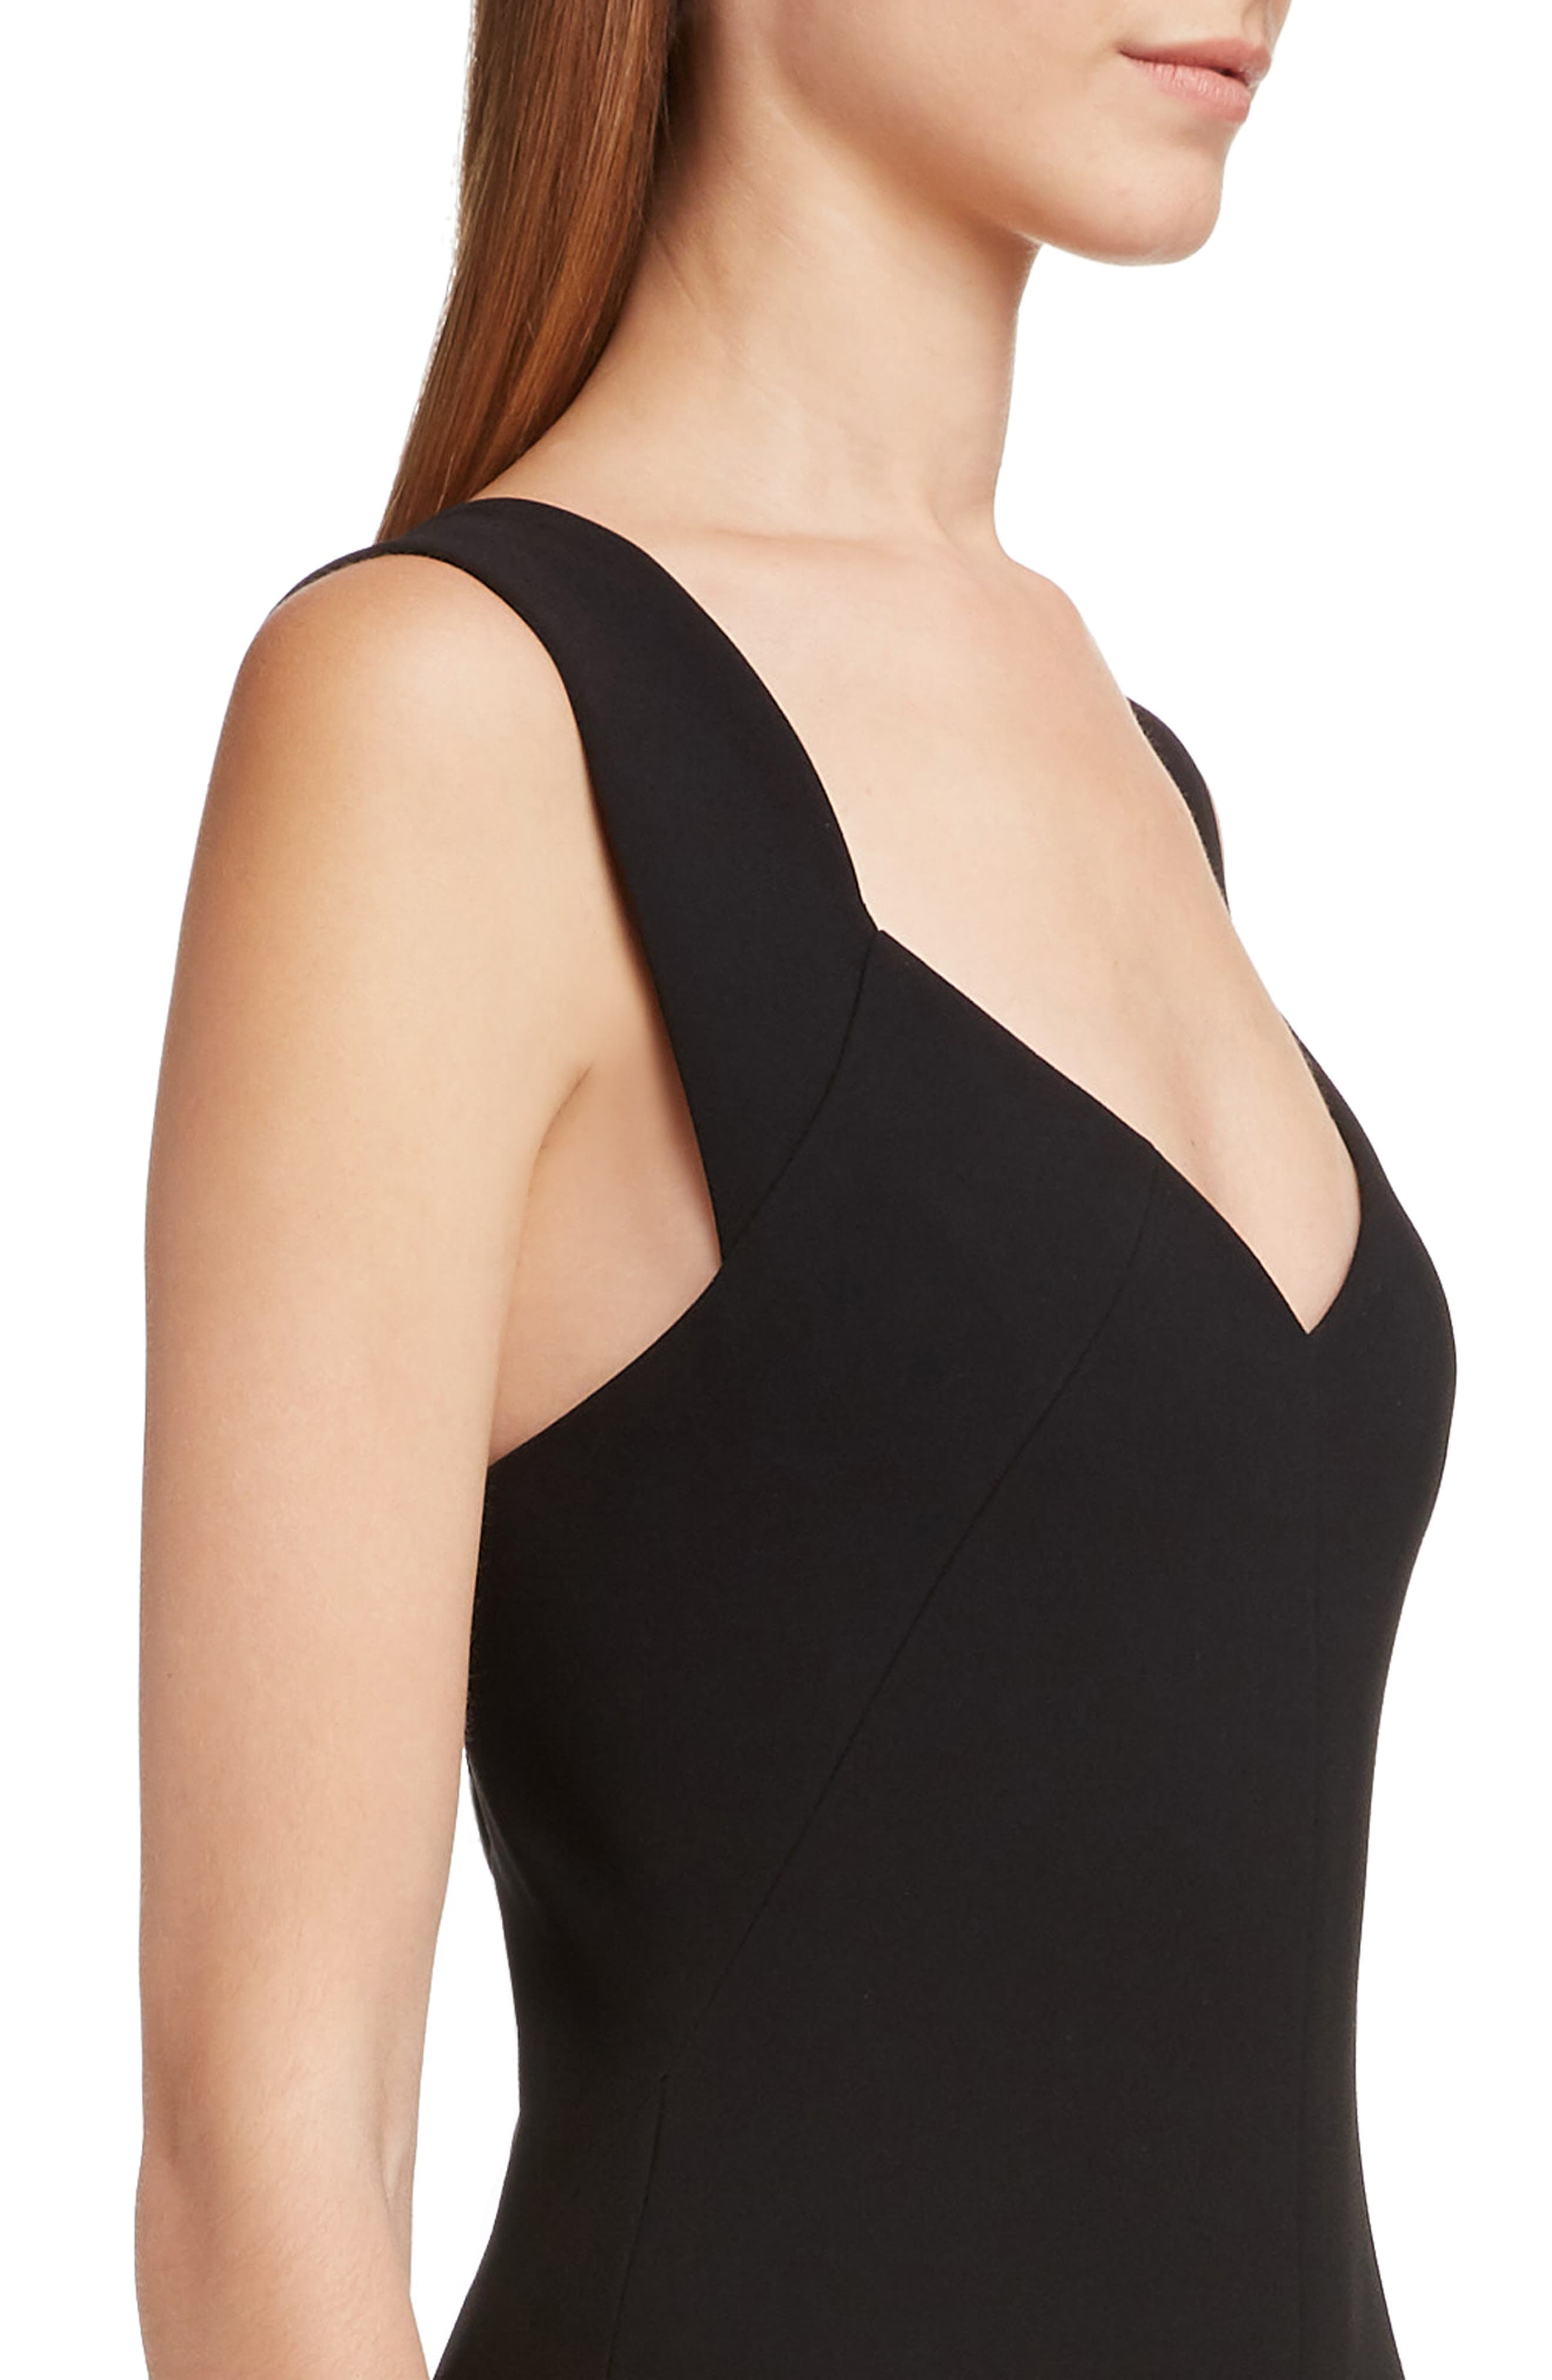 VICTORIA BECKHAM, Sweetheart Neck Body-Con Dress, Alternate thumbnail 4, color, BLACK